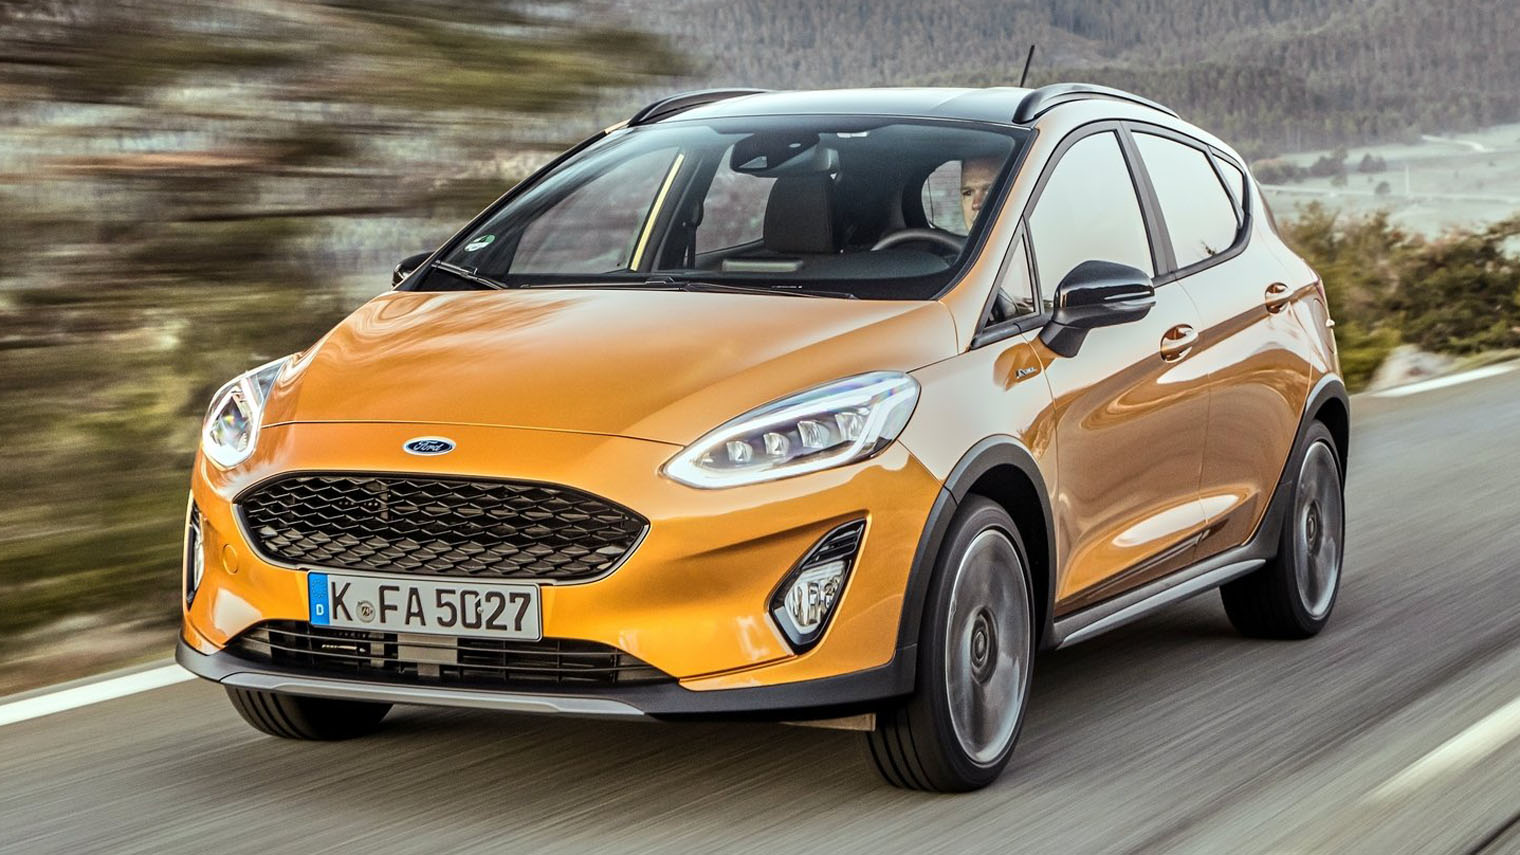 Dubbeltest Ford Fiesta Active Vs Peugeot 2008 Anwb